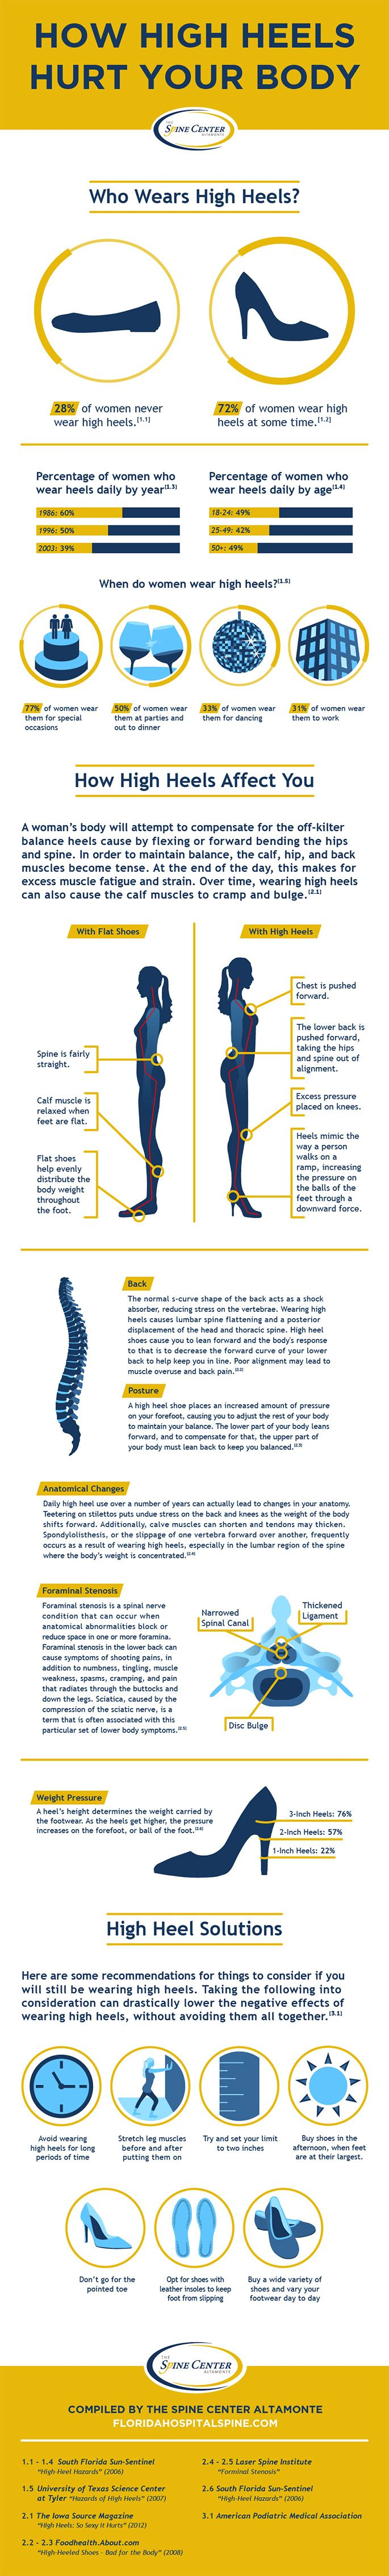 "How High Heels Hurt Your Body [Infographic]    Basically why I will never wear heels.  Being 5'10"" also makes it feel a little unnecessary."